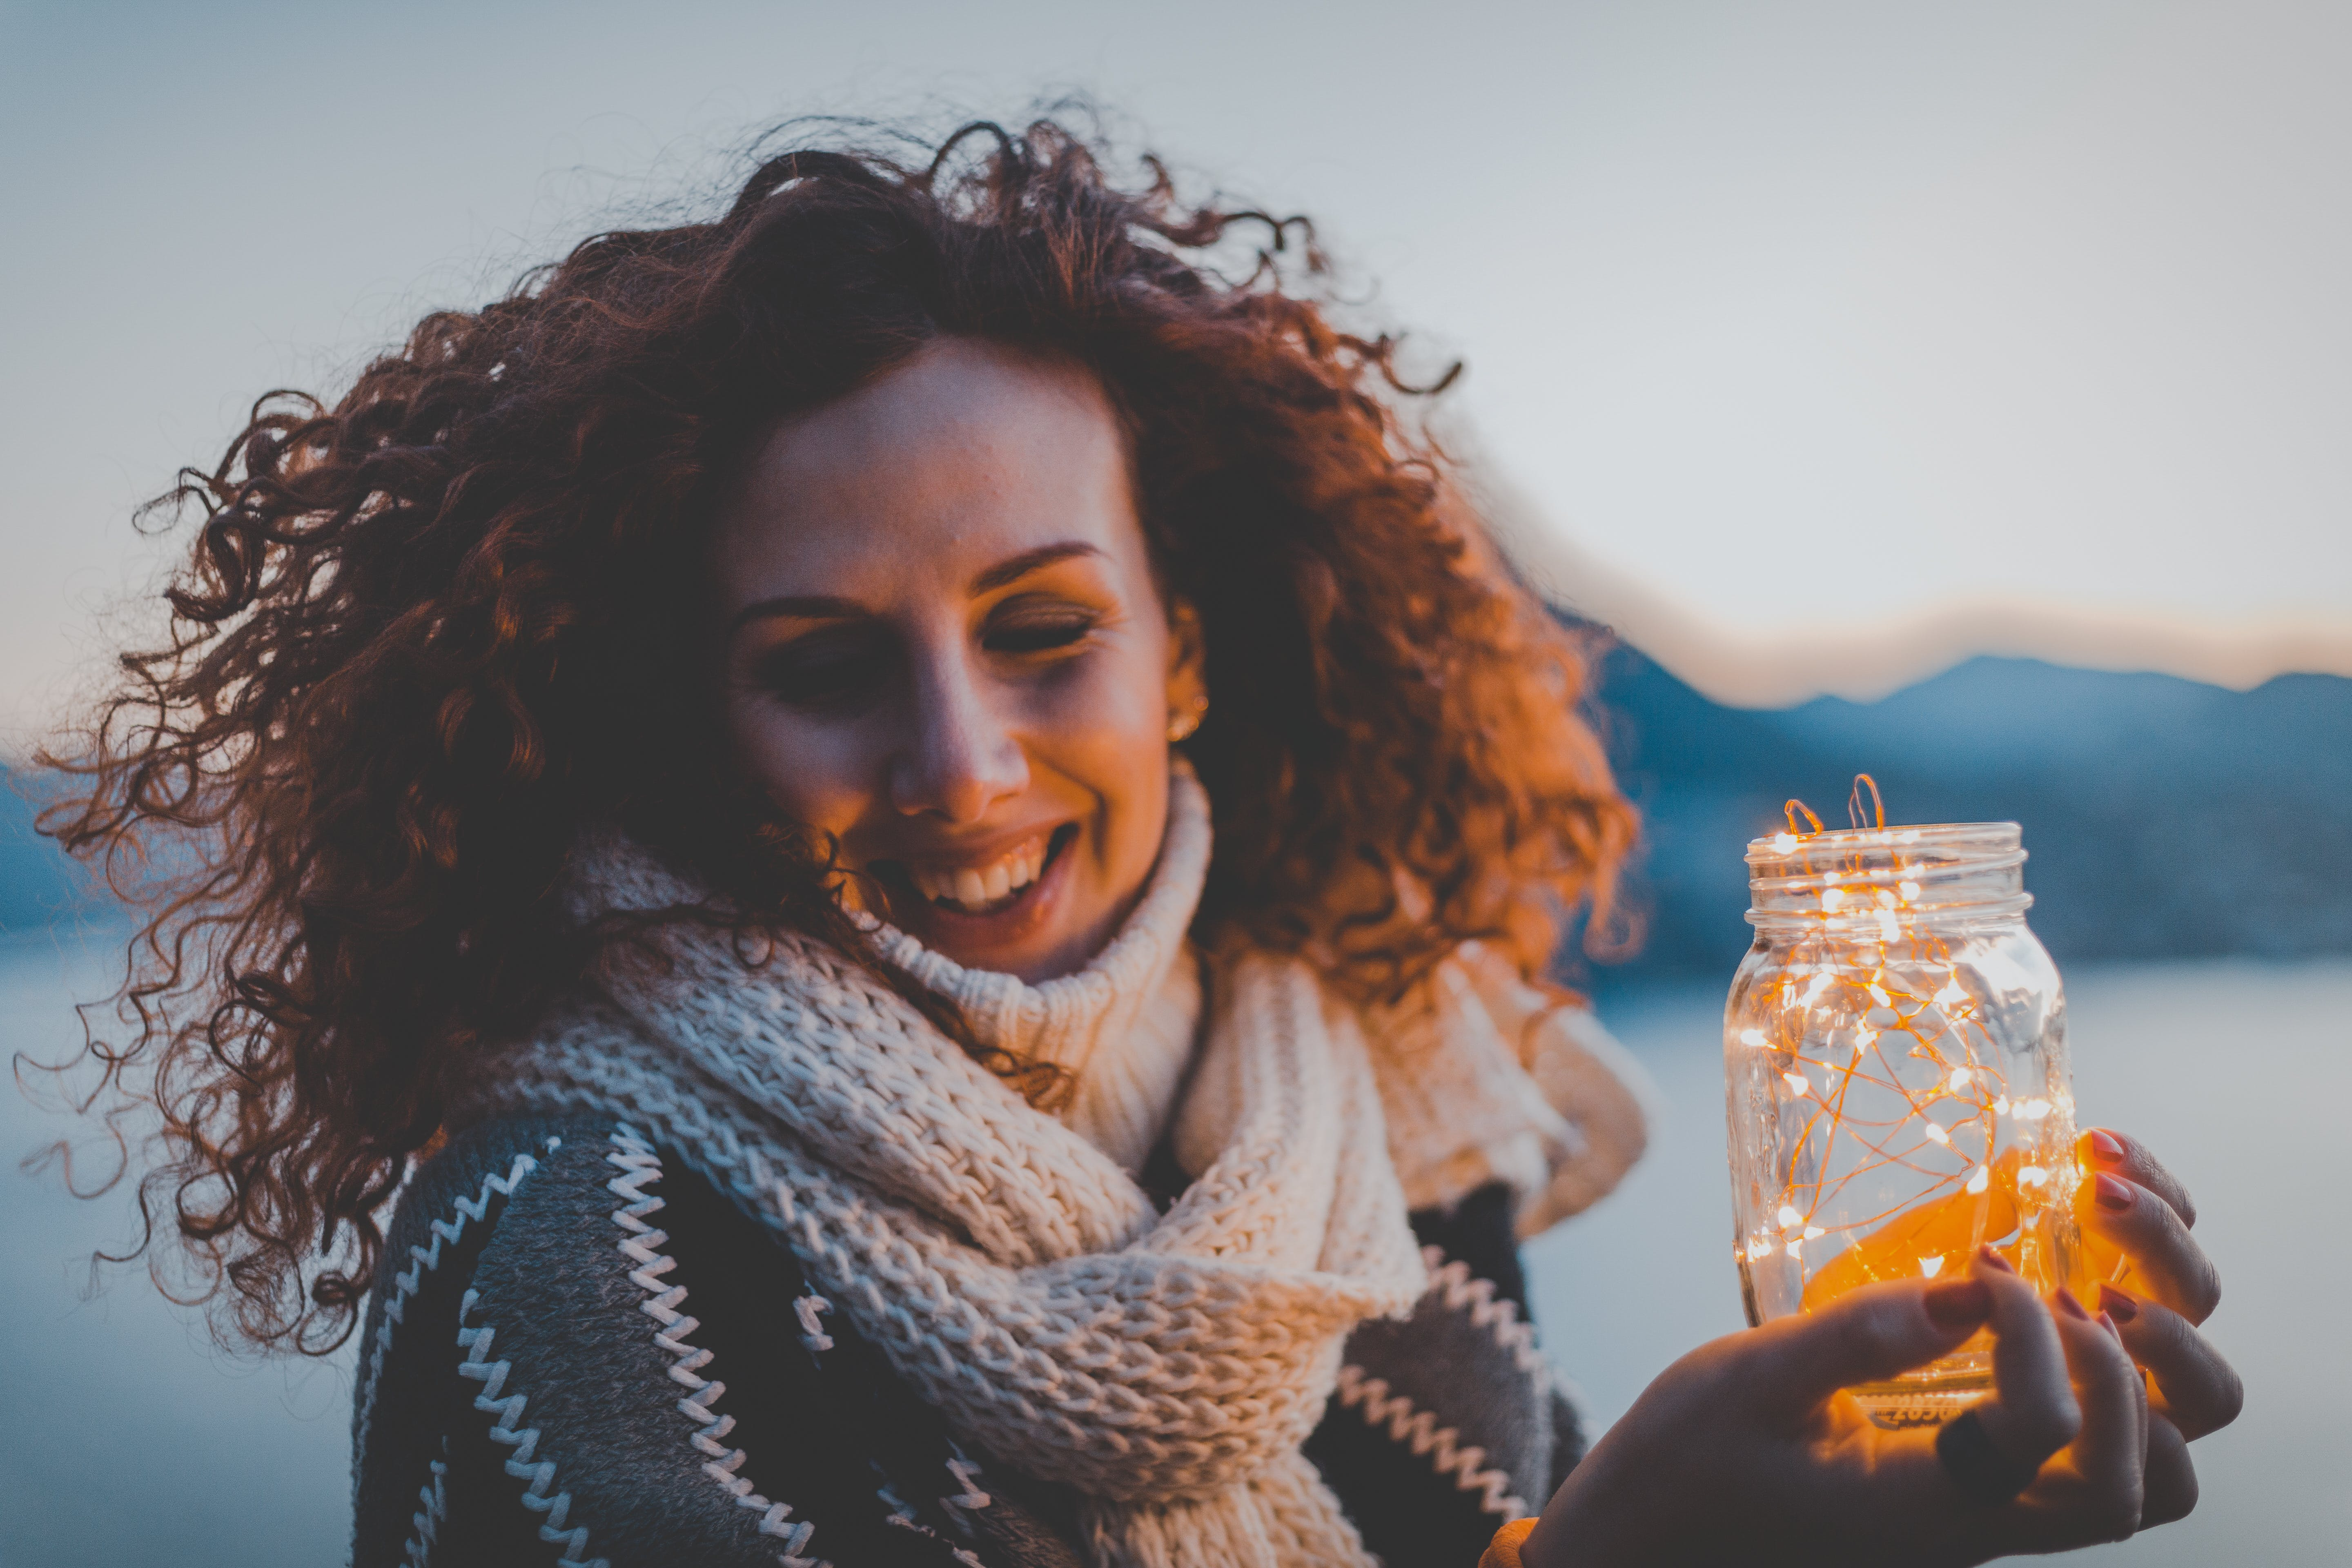 Woman Holding Lighted Jar Smiling